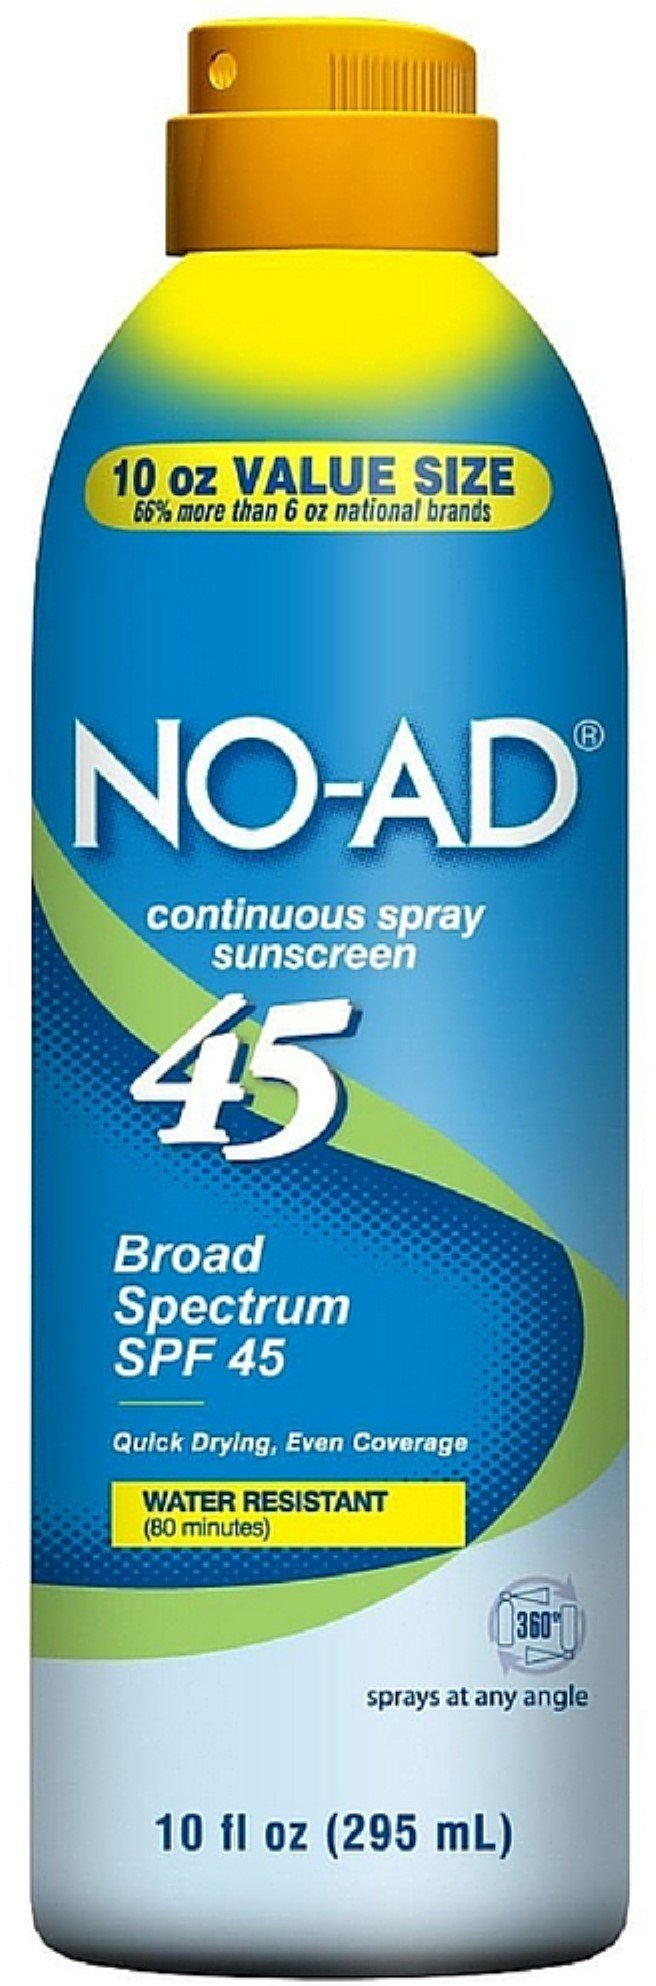 NO-AD Water Resistant Continuous Spray Sunscreen SPF 45 10 oz (Pack of 9)